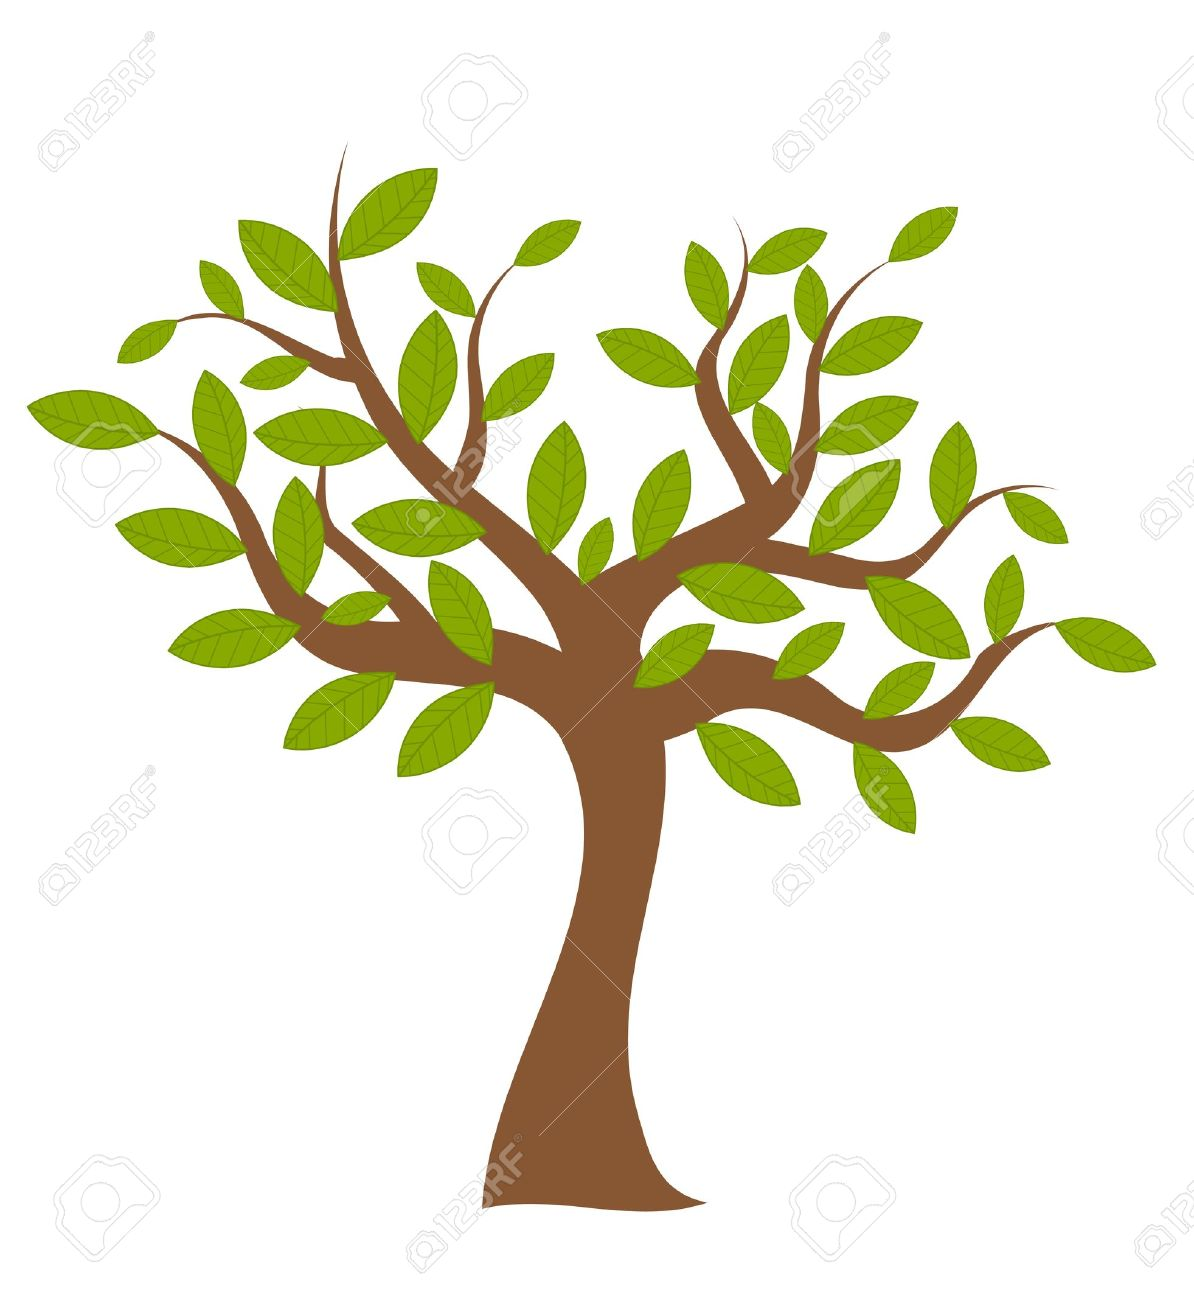 Spring Tree With Green Leaves Over White. Vector Illustration.